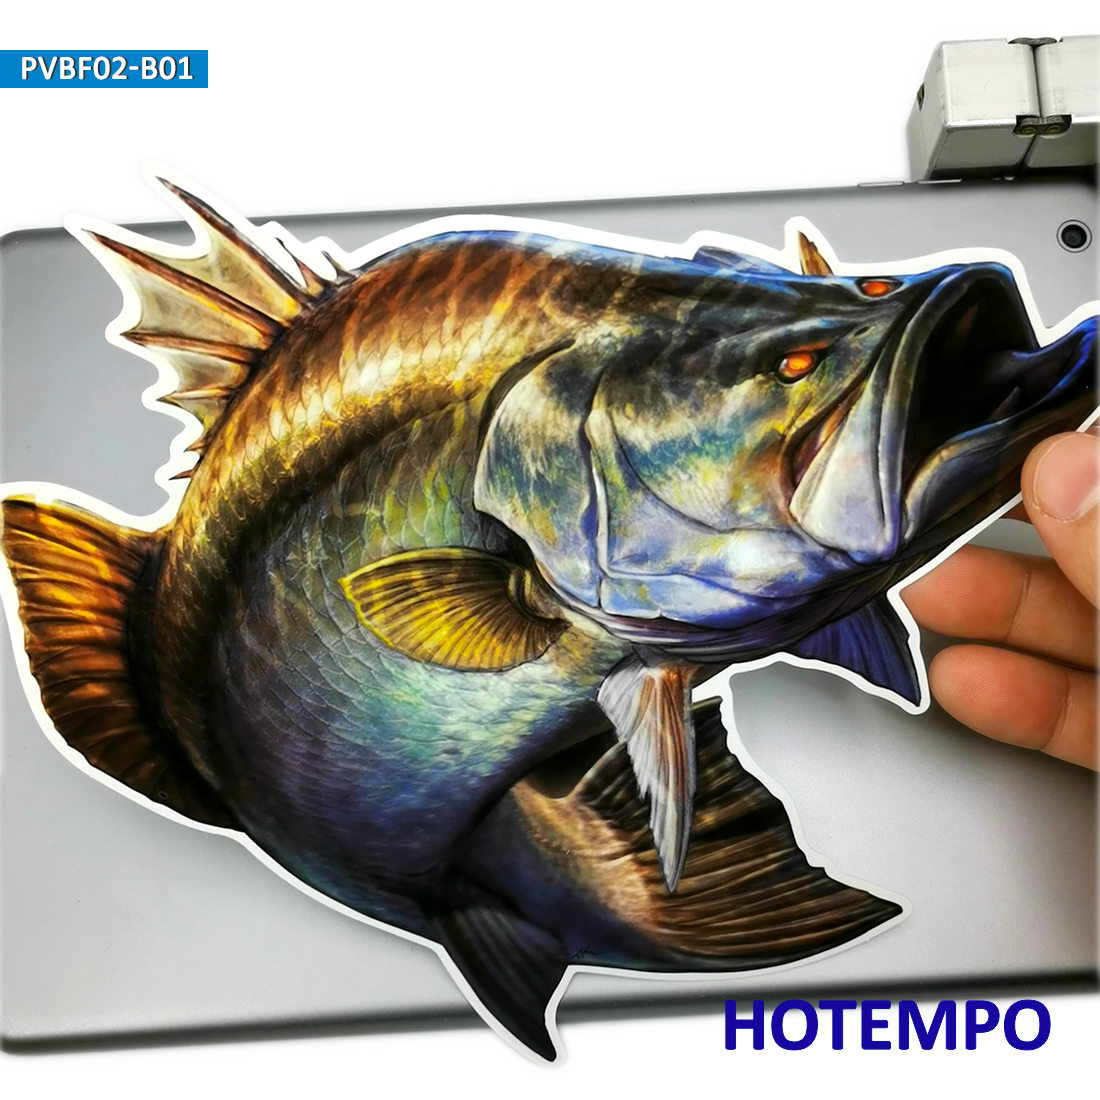 20cm 7.87inch Big Size Golden Fish Largemouth Bass Perch Stickers For Laptop Luggage Skateboard Car Fishing Box Bucket Stickers